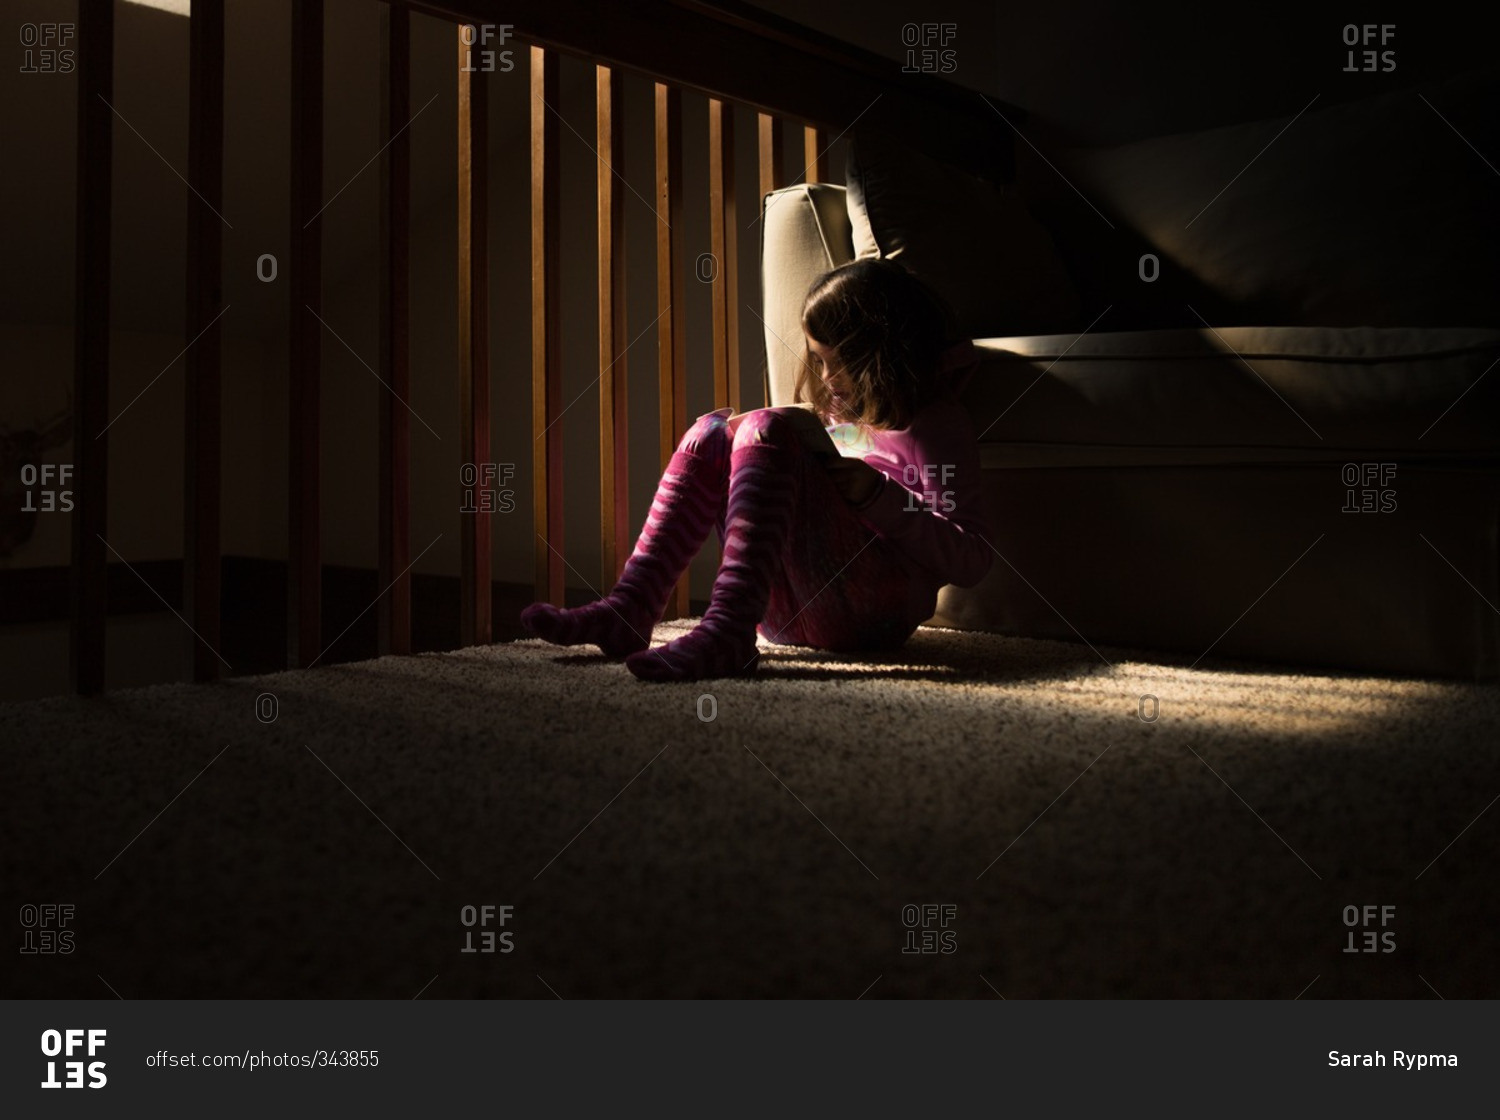 Little girl sitting in a dark room reading a book stock photo - OFFSET